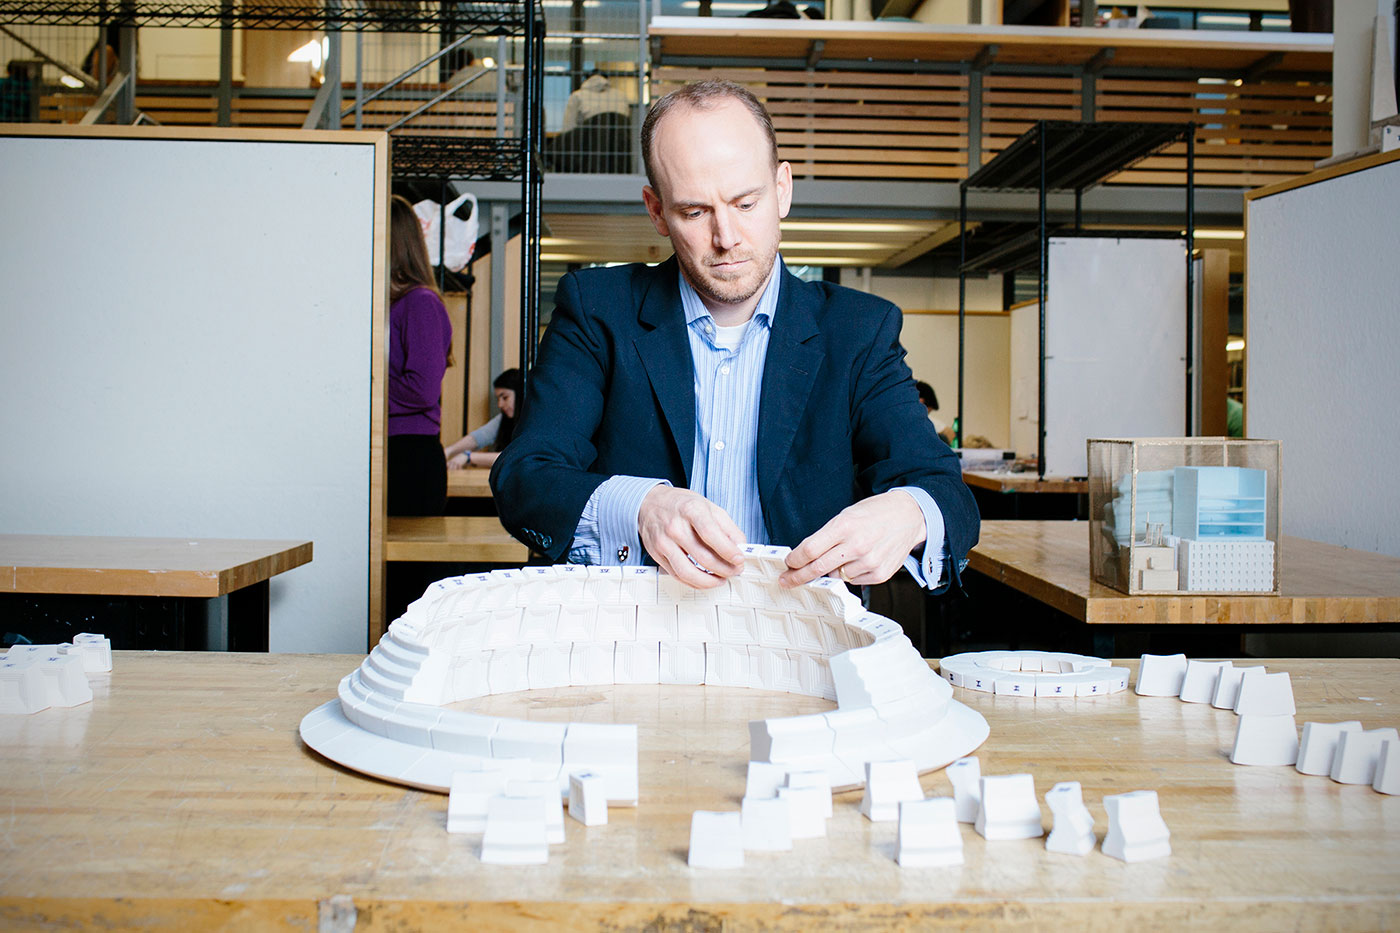 Man assembles a large architectural model on a table inside a classroom